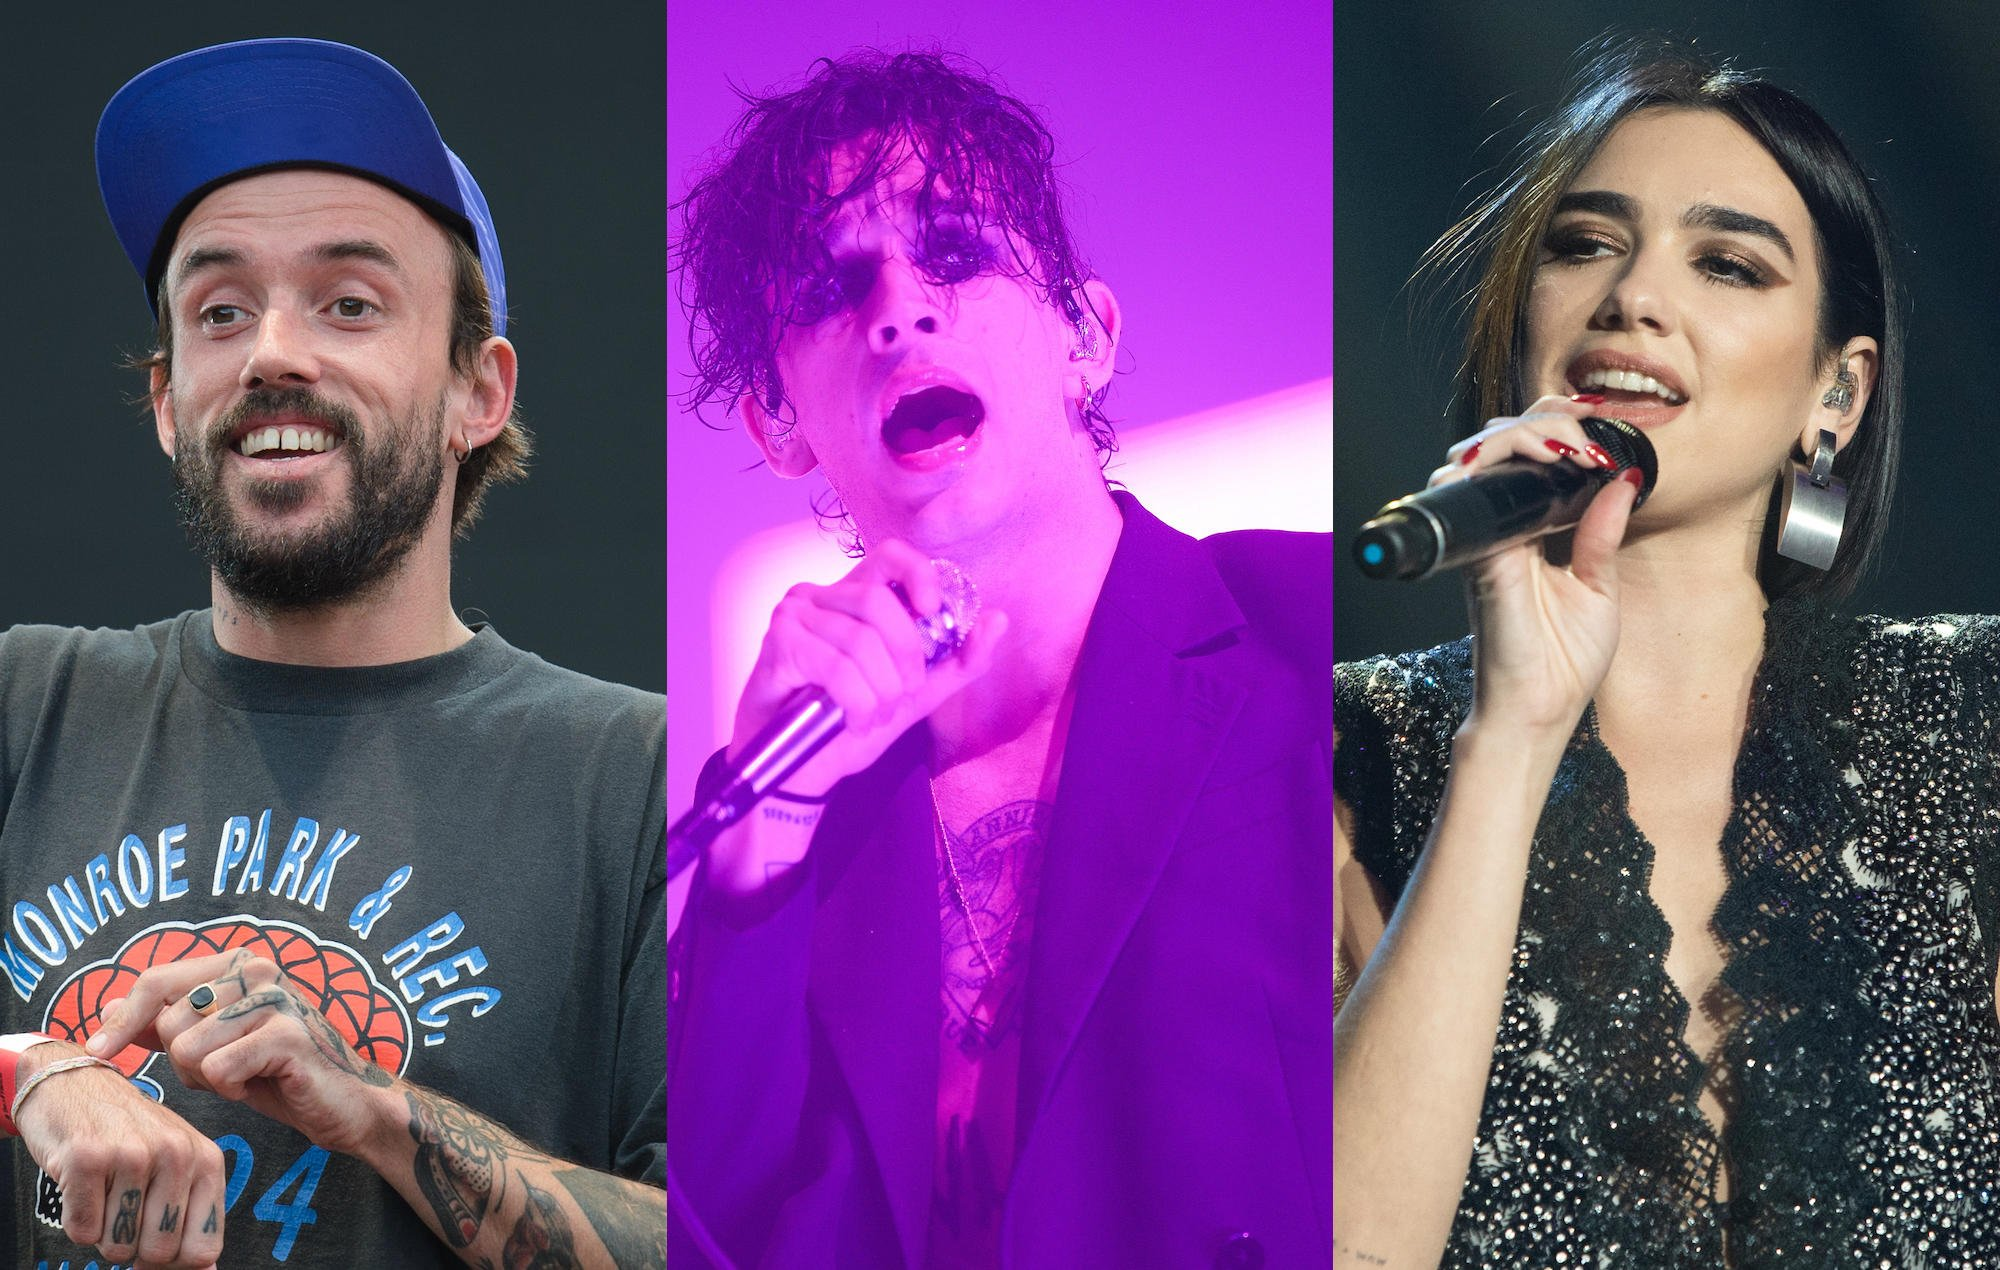 .@IDLESband, @The1975, and @DuaLipa amongst artists nominated for 2019 #BRITAwards https://t.co/YPyvBZRIxg https://t.co/Mfstk8OFen